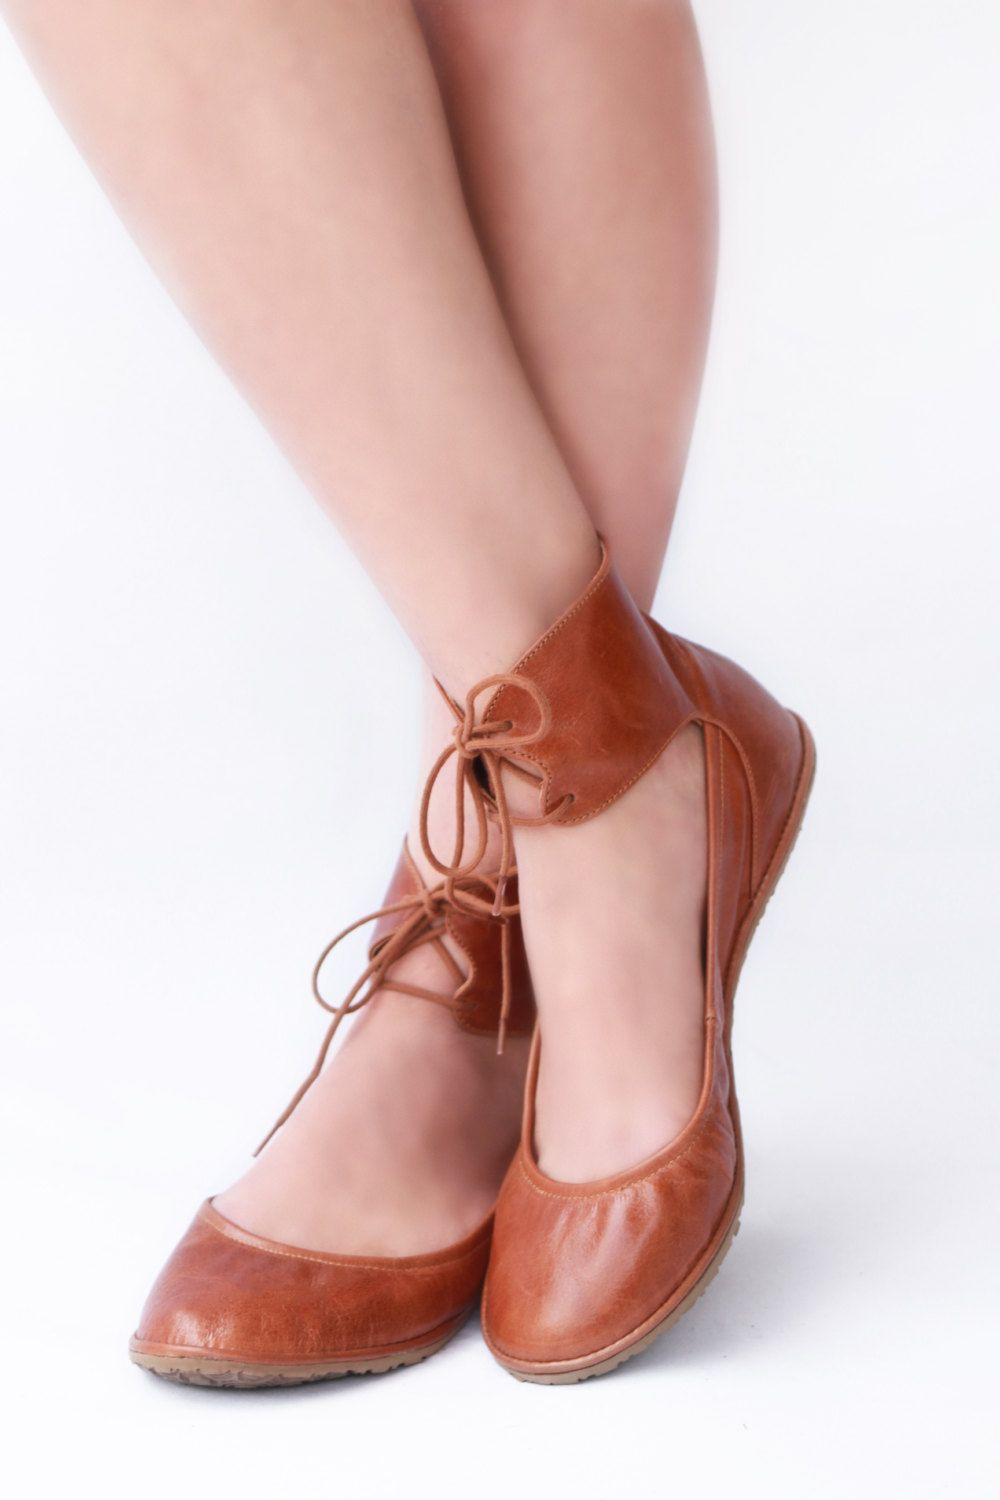 Ballet flats - Ankle lace-up Handmade